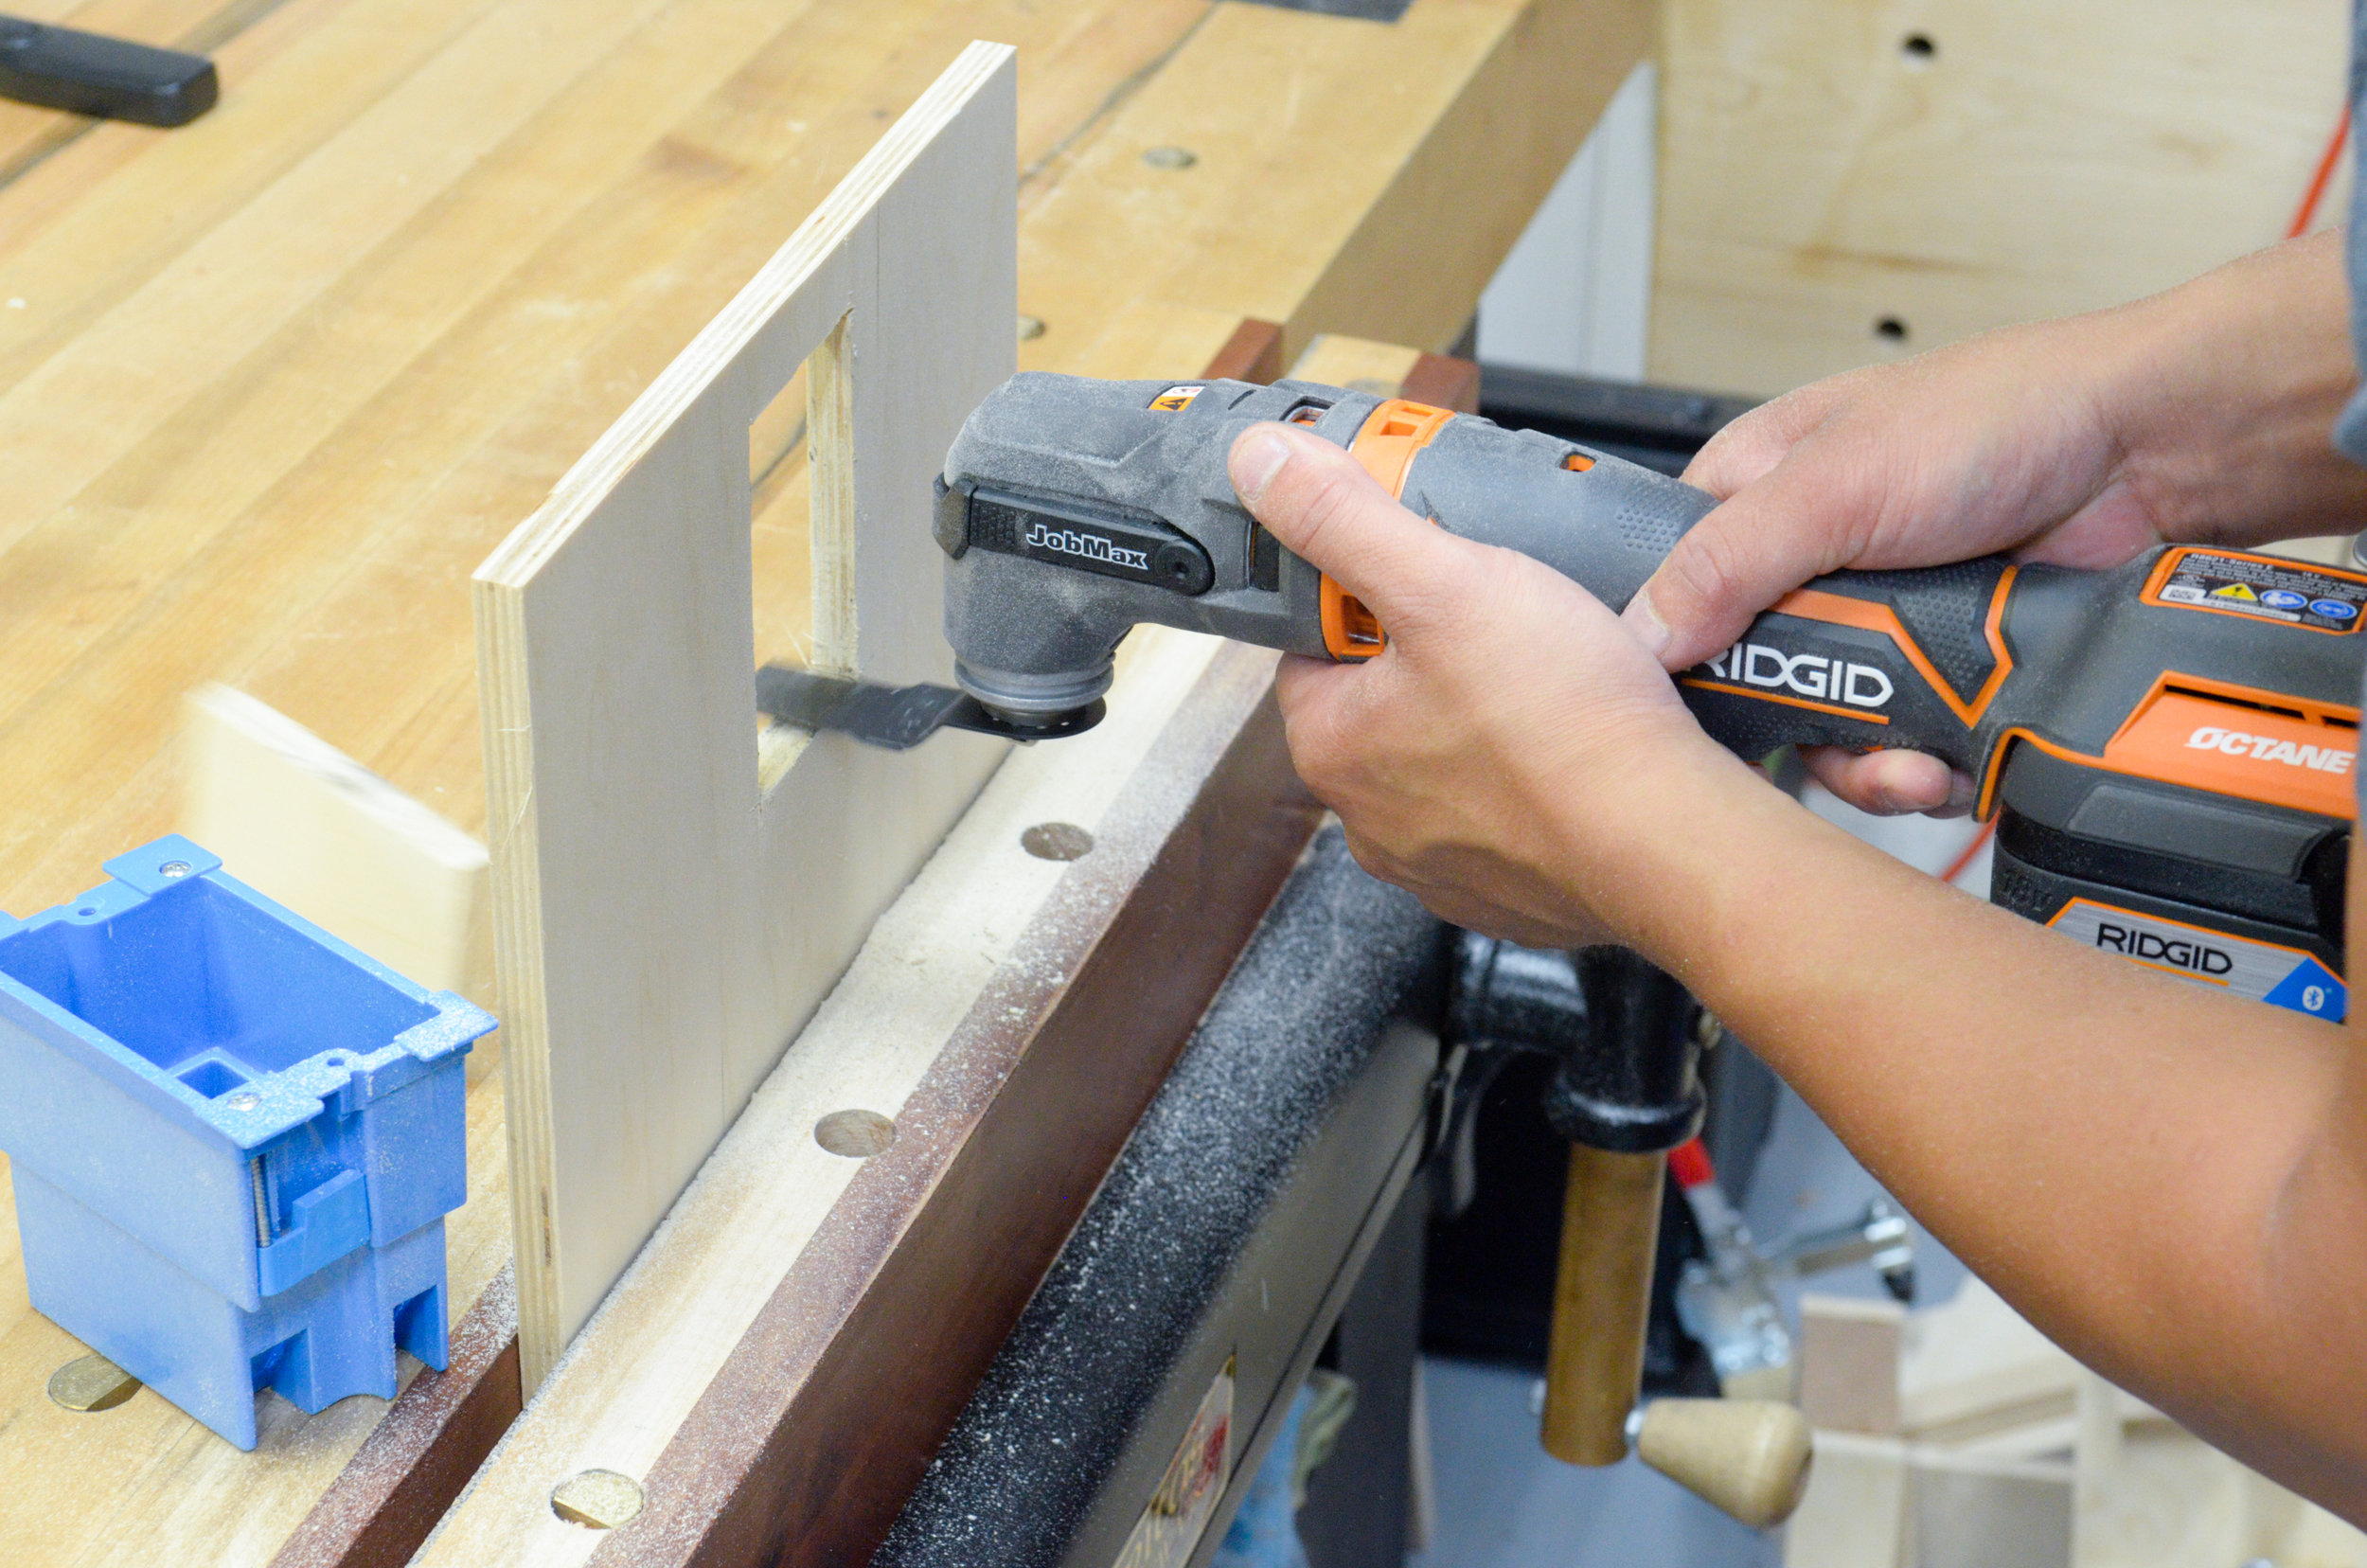 The 1-1/8 in plunge wood cutting blade is perfect for making right angle cuts.